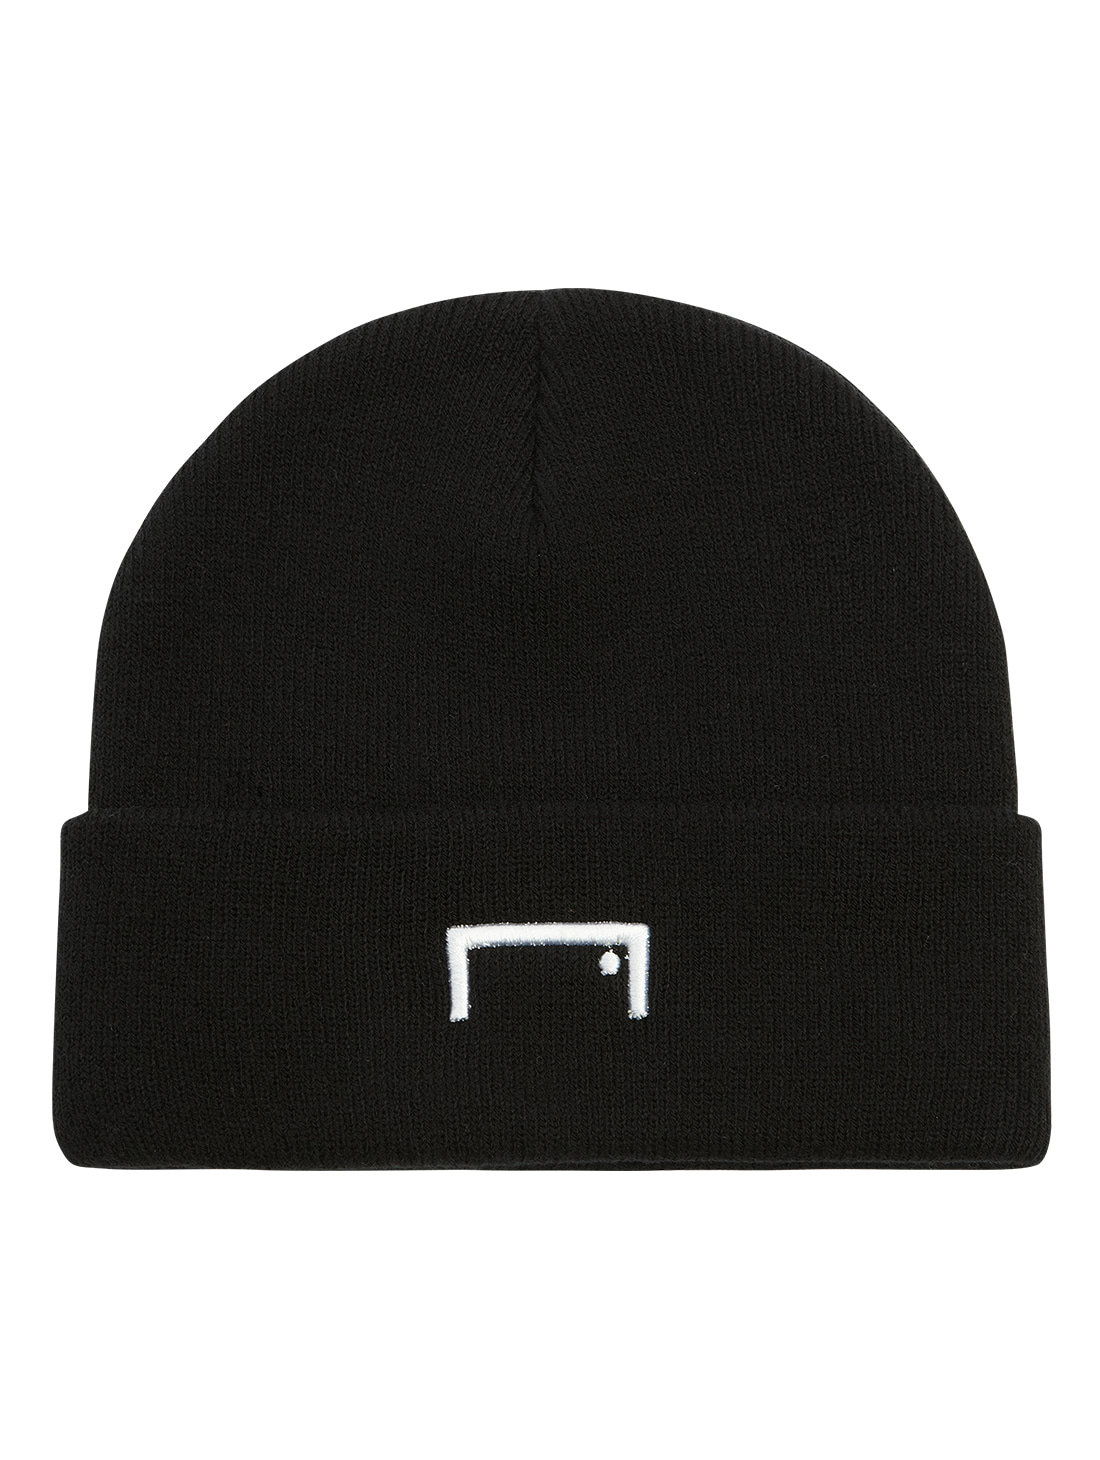 GOALSTUDIO RESPECT LABEL BEANIE - BLACK